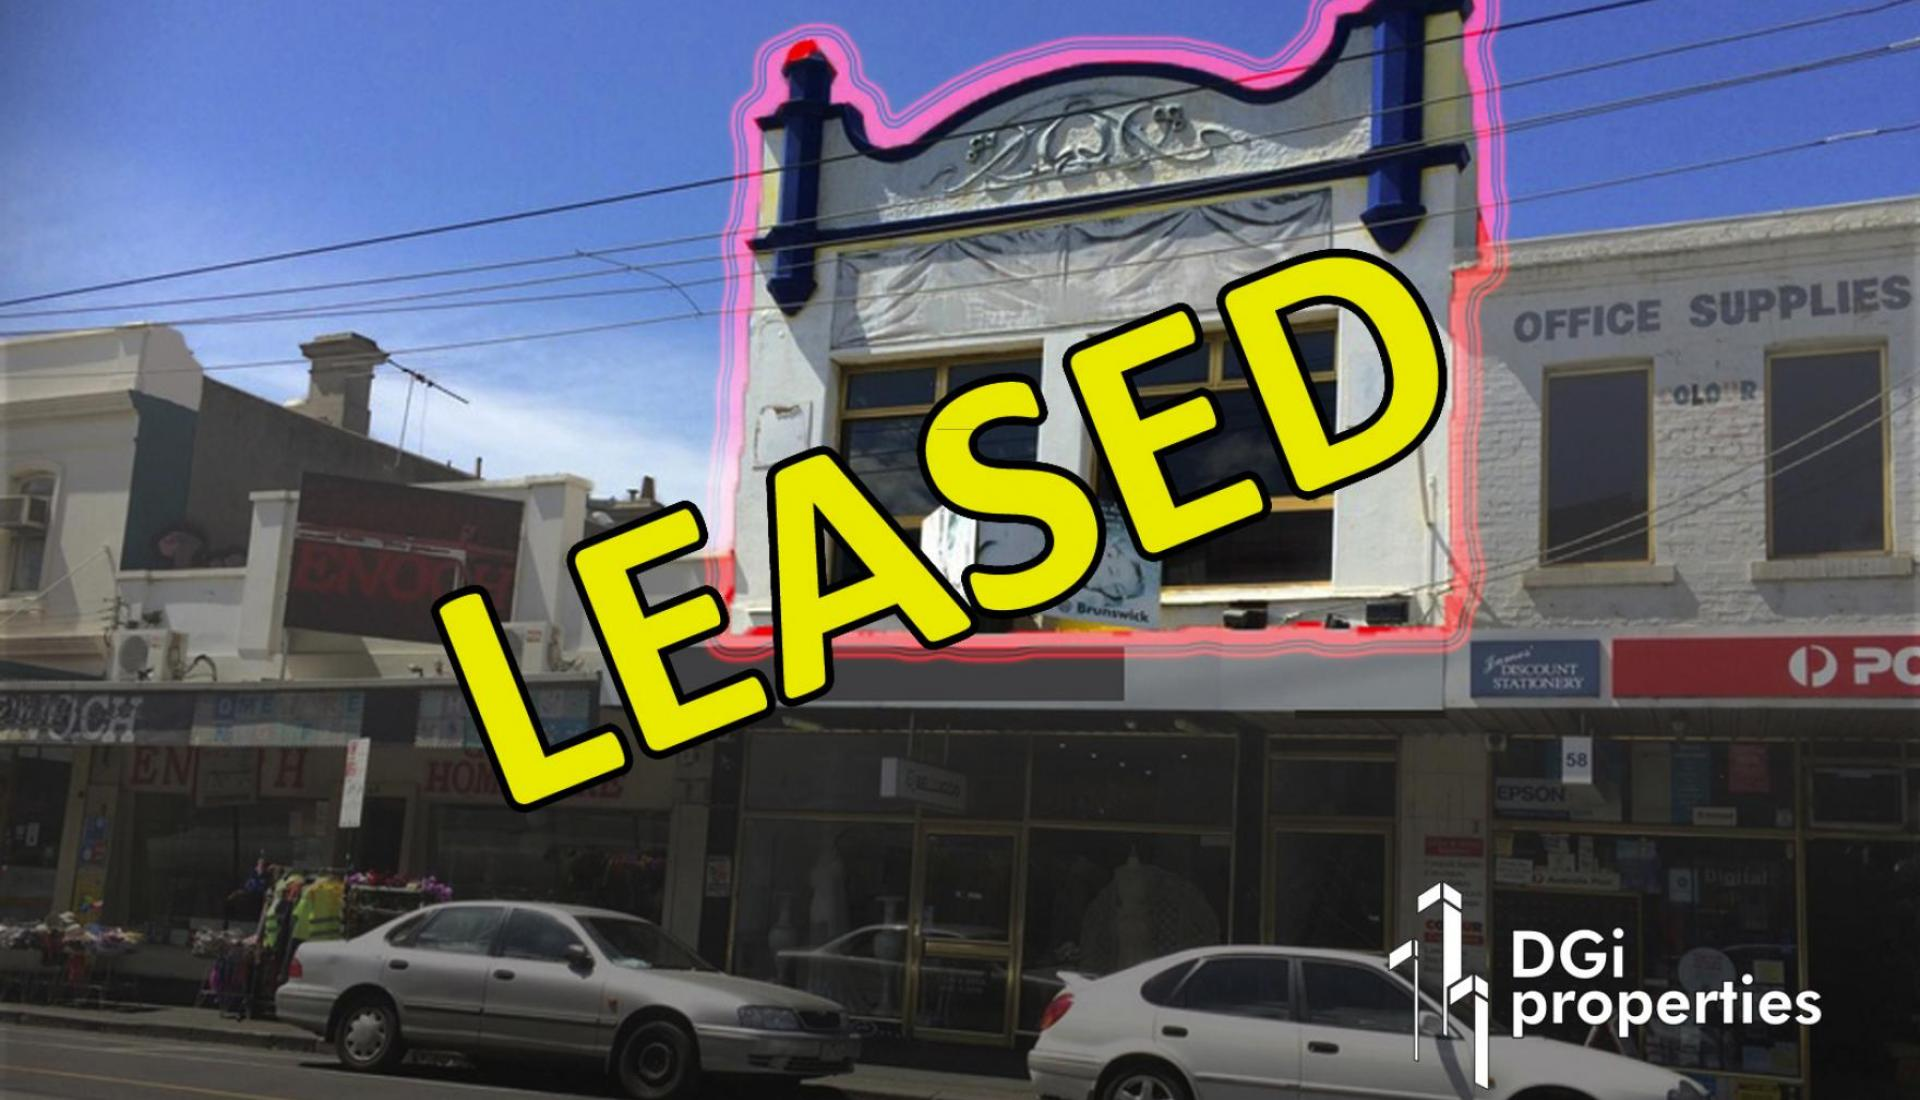 FIRST FLOOR SYDNEY ROAD COMMERCIAL SPACE IN THE CENTRE OF BRUNSWICK RETAIL PRECINCT